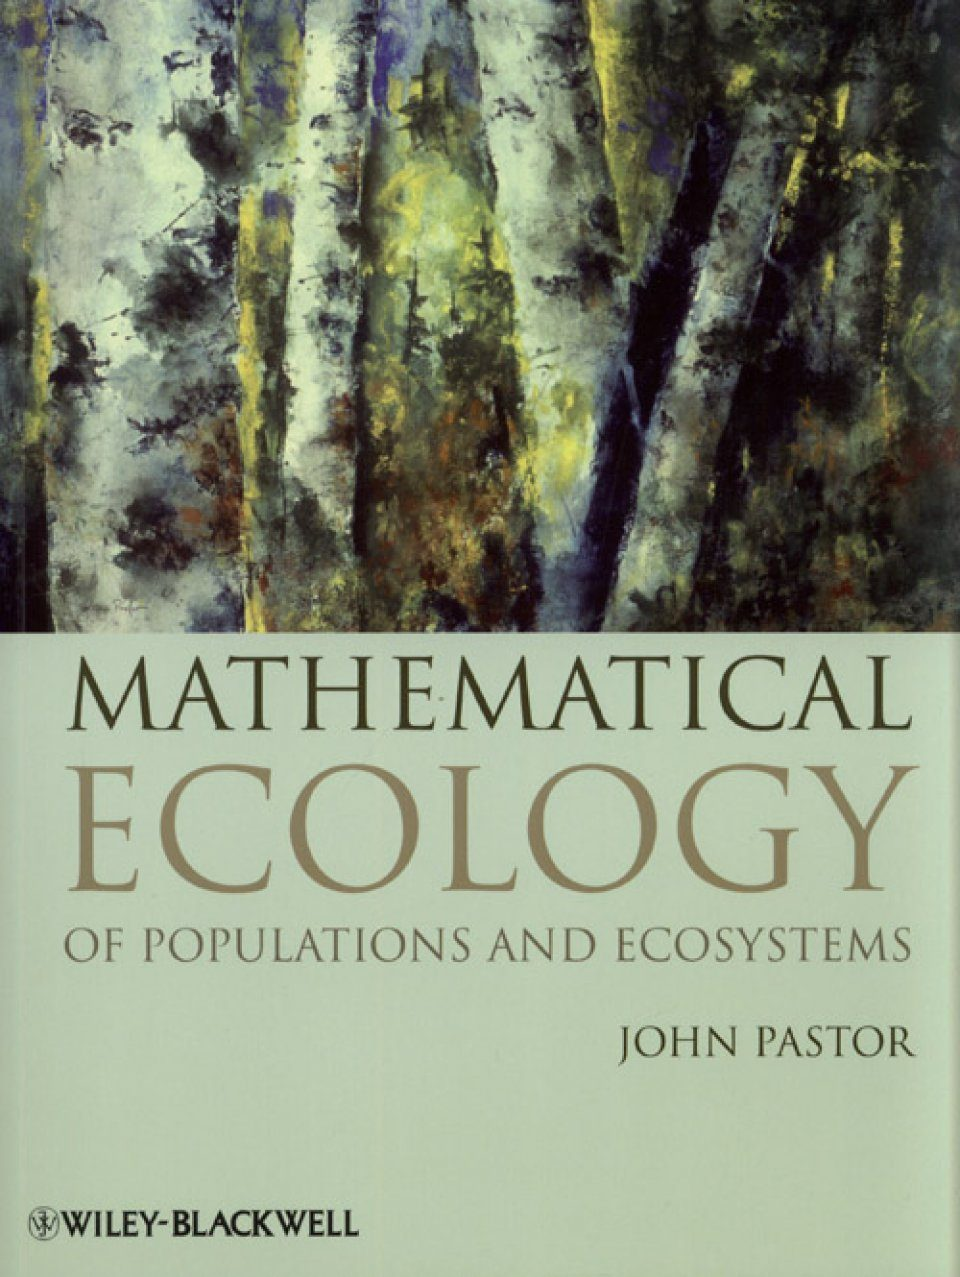 Mathematical Ecology of Populations and Ecosystems